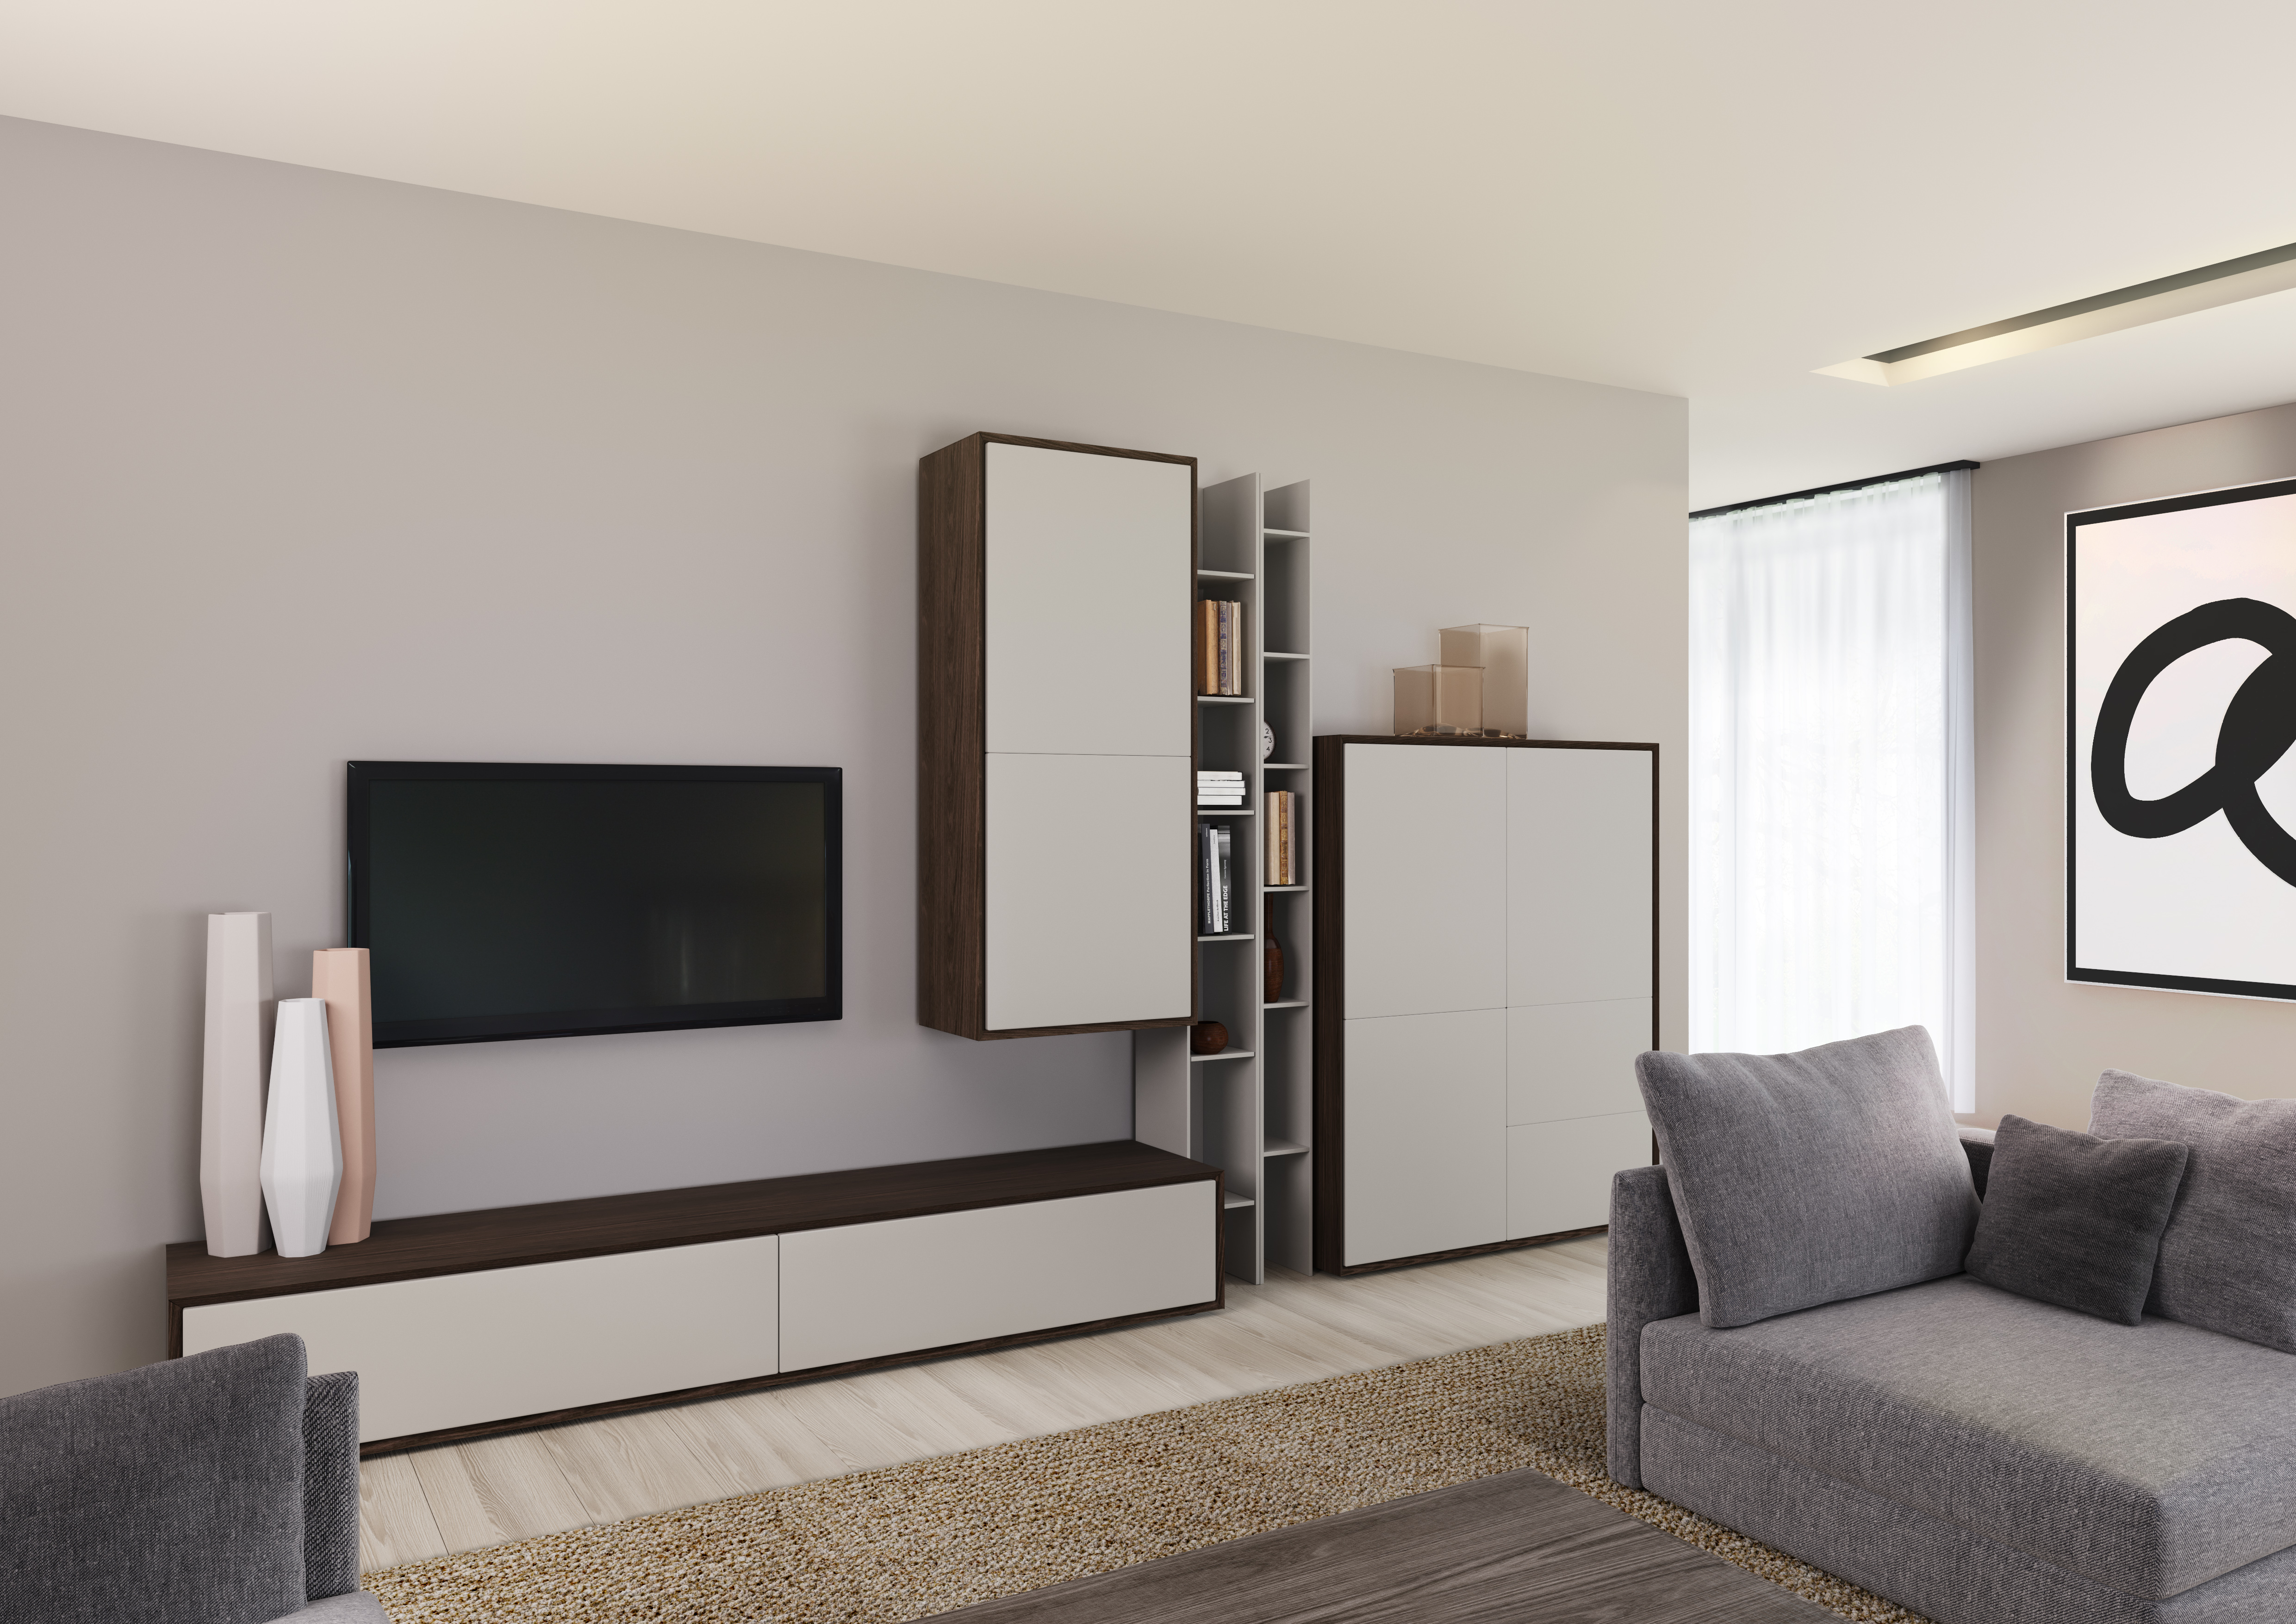 Meuble tv edge mobilier confort for Salle a manger kyara